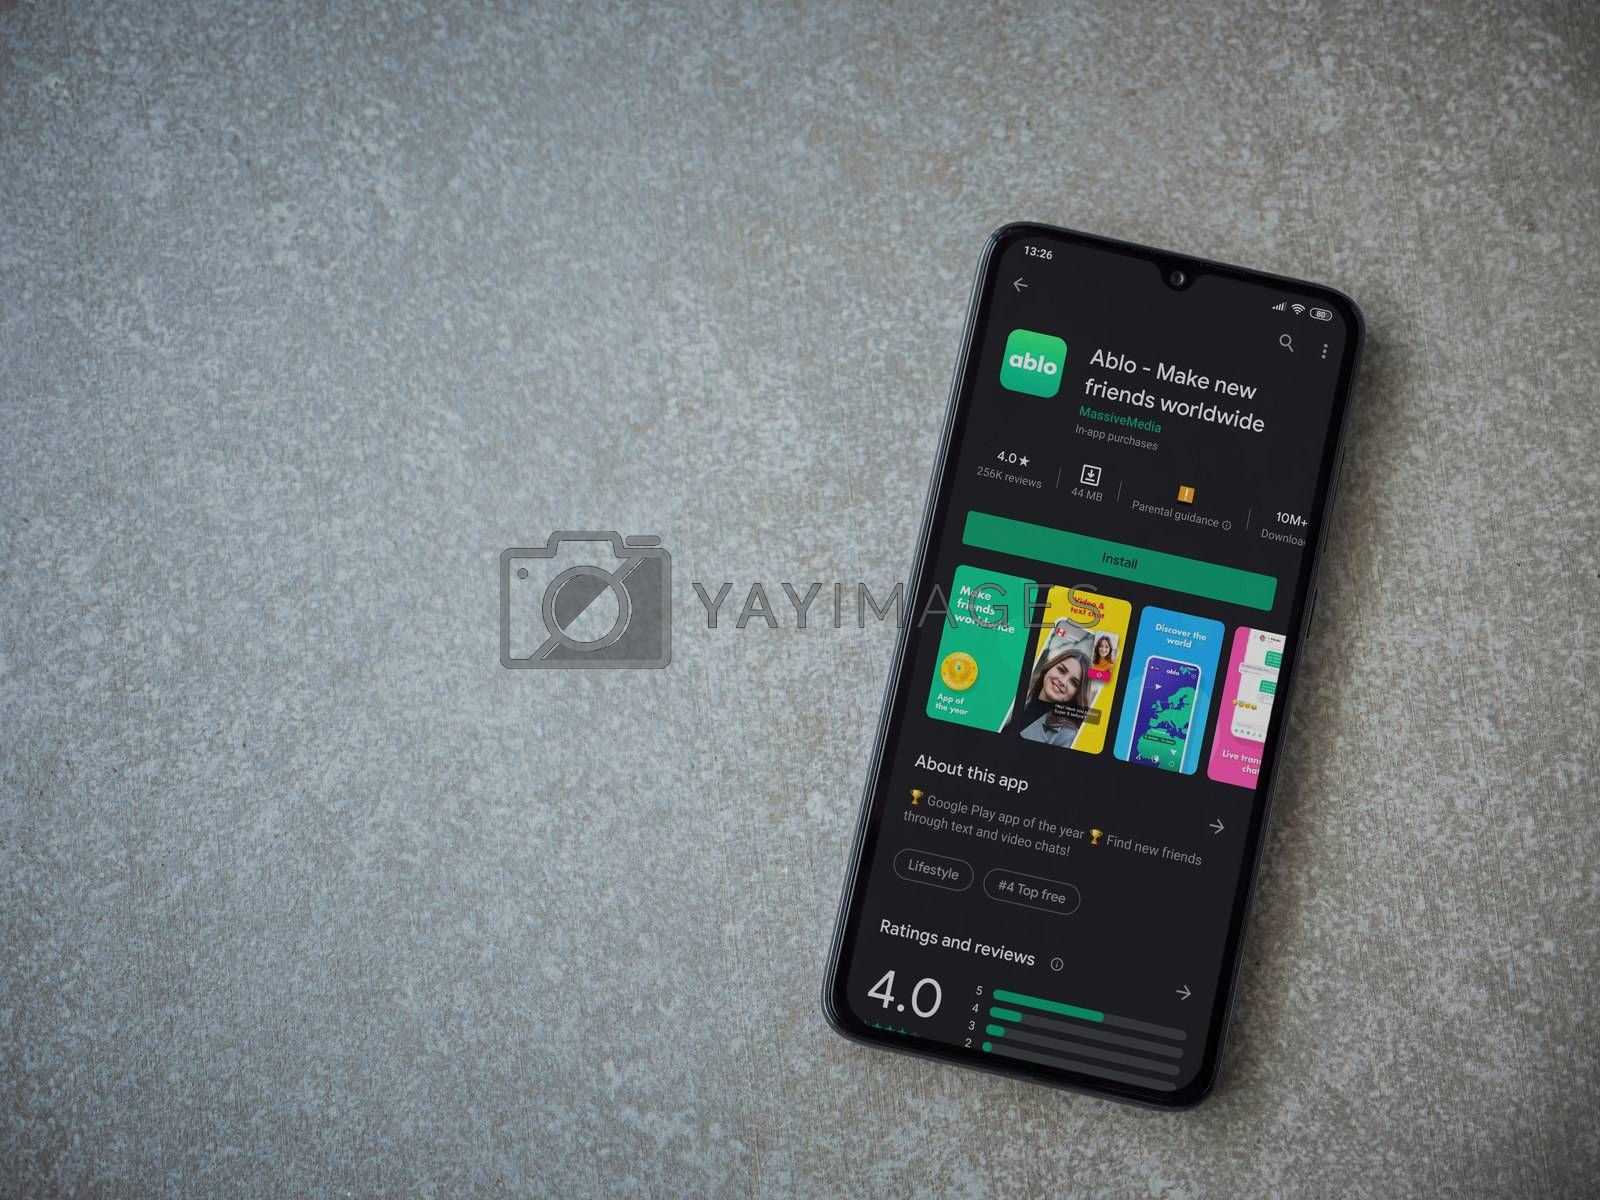 Lod, Israel - July 8, 2020: Ablo app play store page on the display of a black mobile smartphone on ceramic stone background. Top view flat lay with copy space.